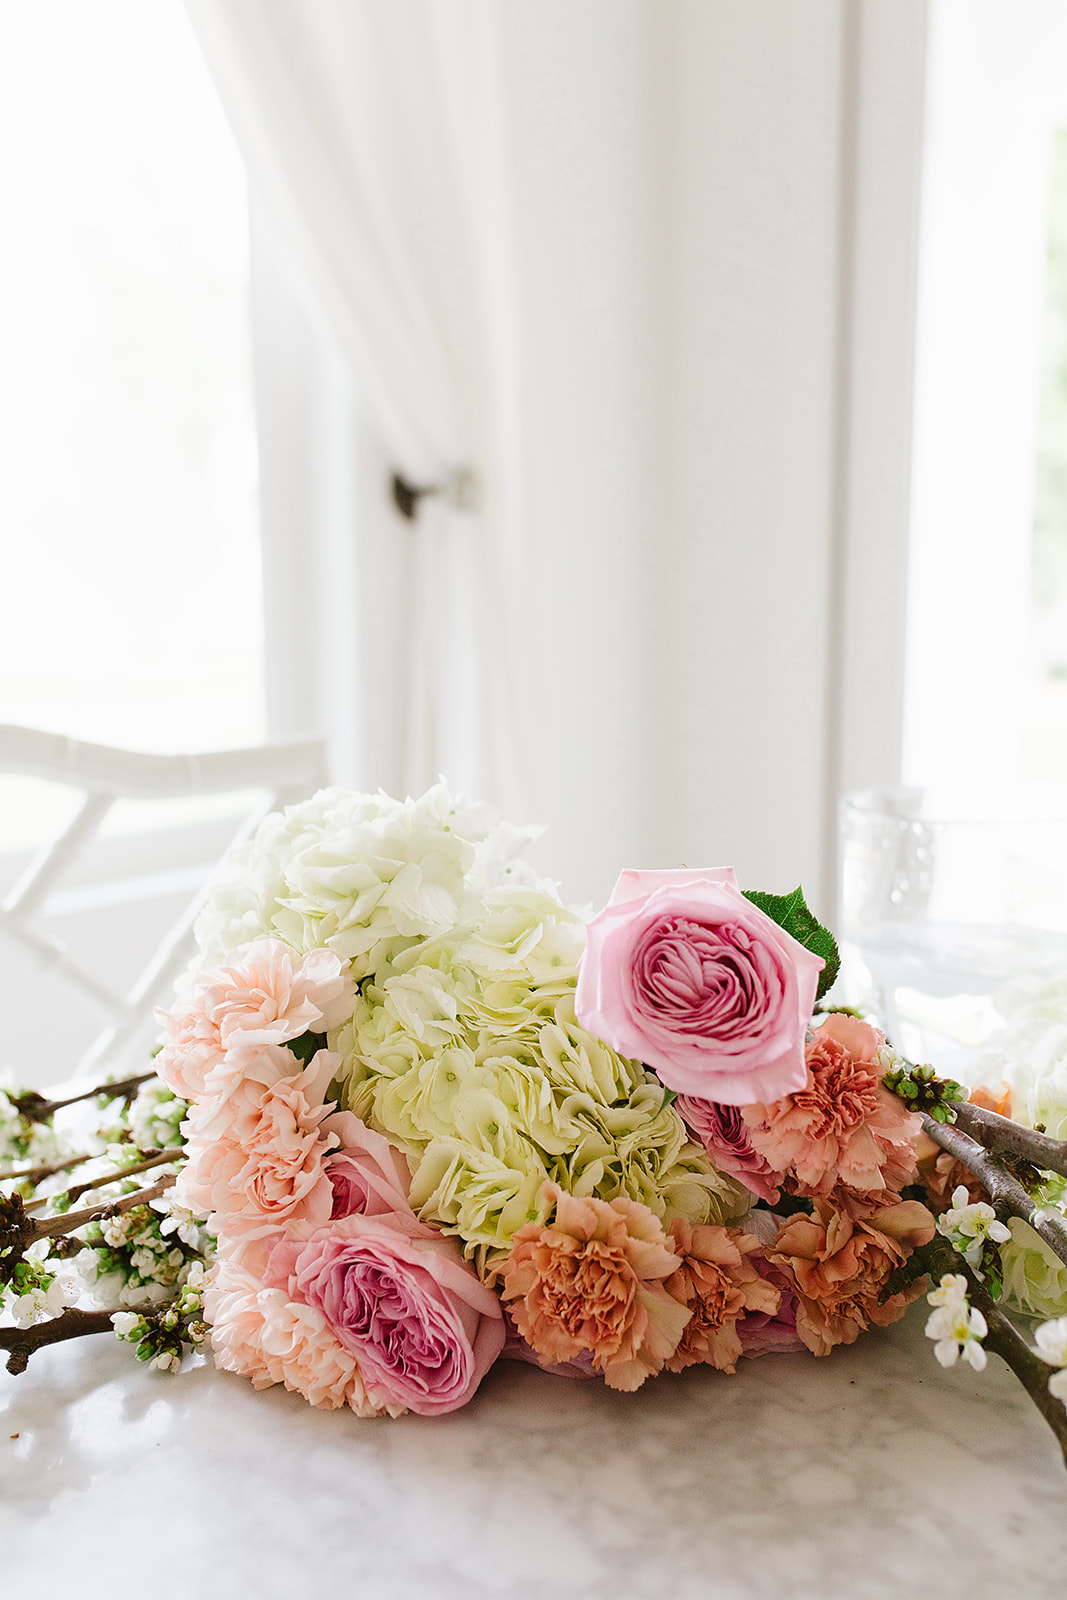 How to make your floral arrangements last longer at home!